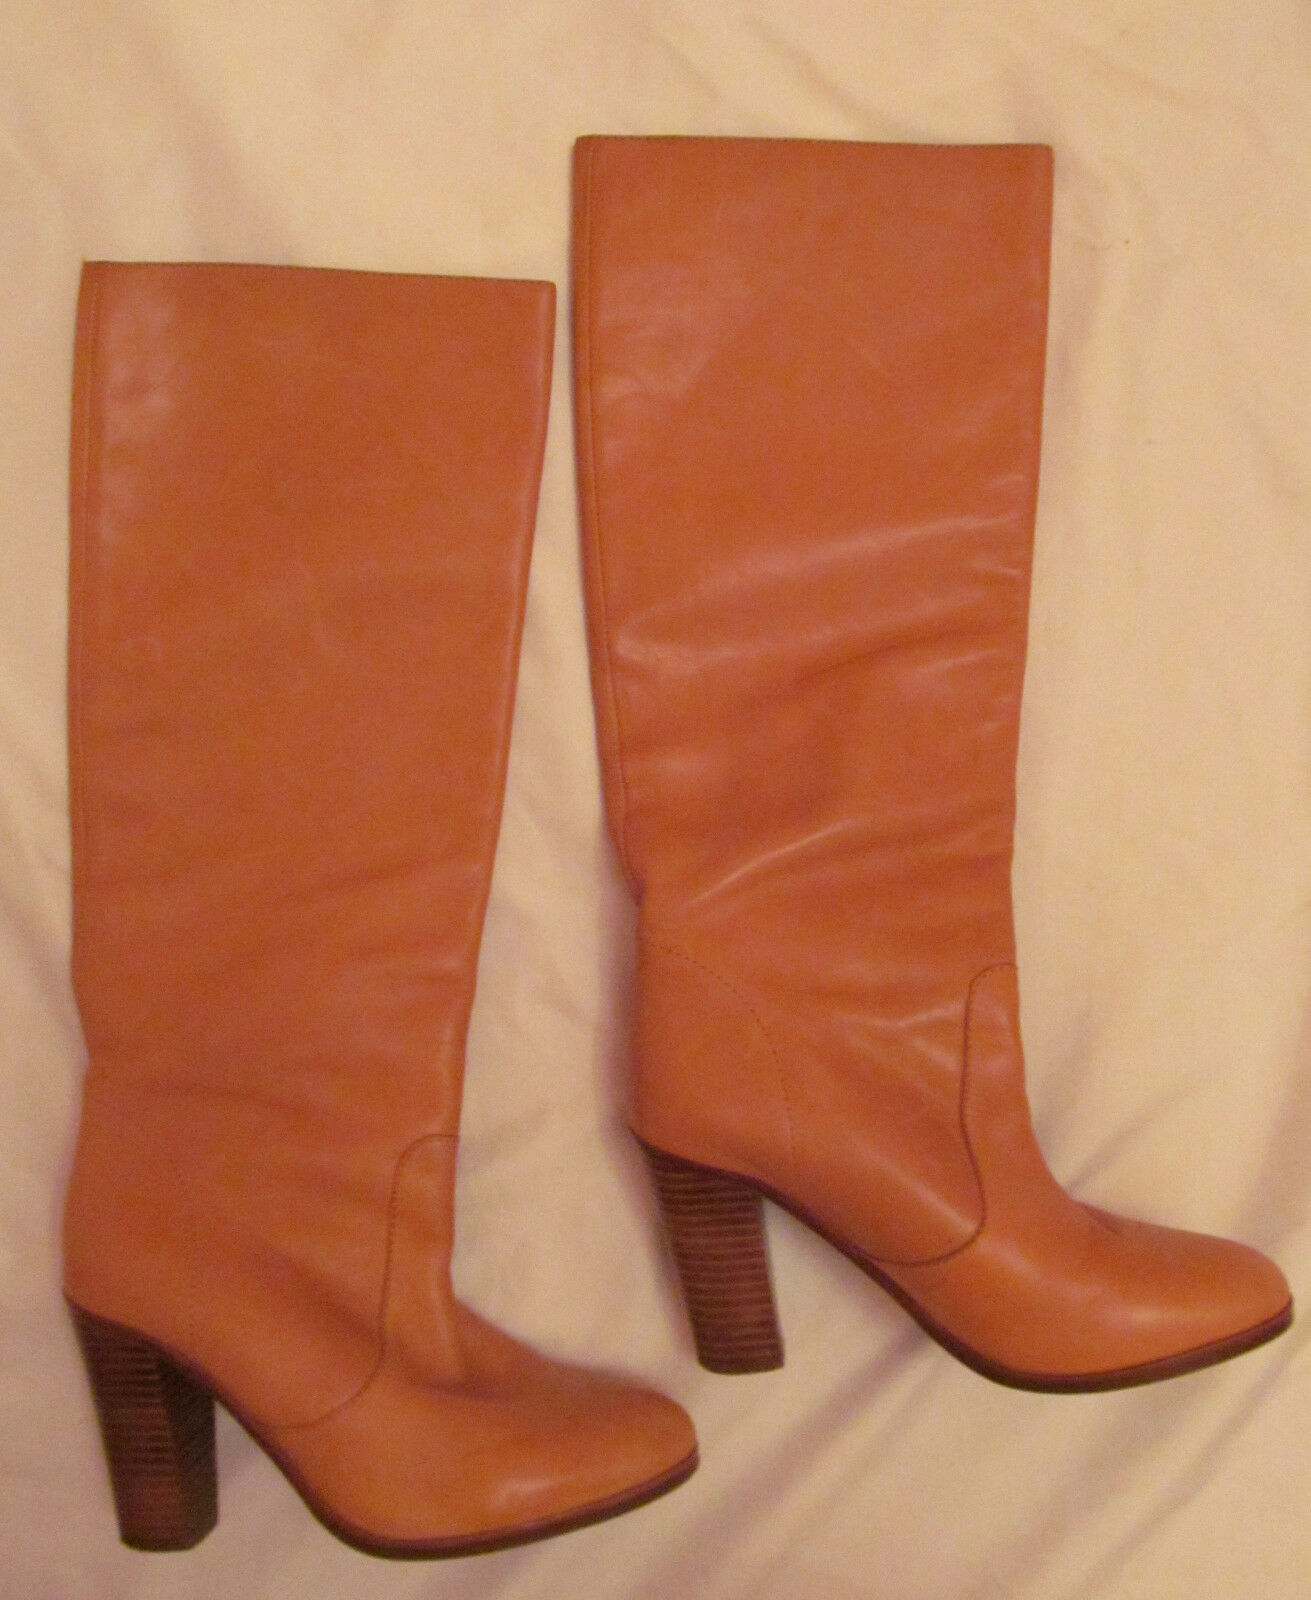 UTERQUE Stiefel buttery soft carmel Leder tall pull on Stiefel UTERQUE 38  8 M fdc23f